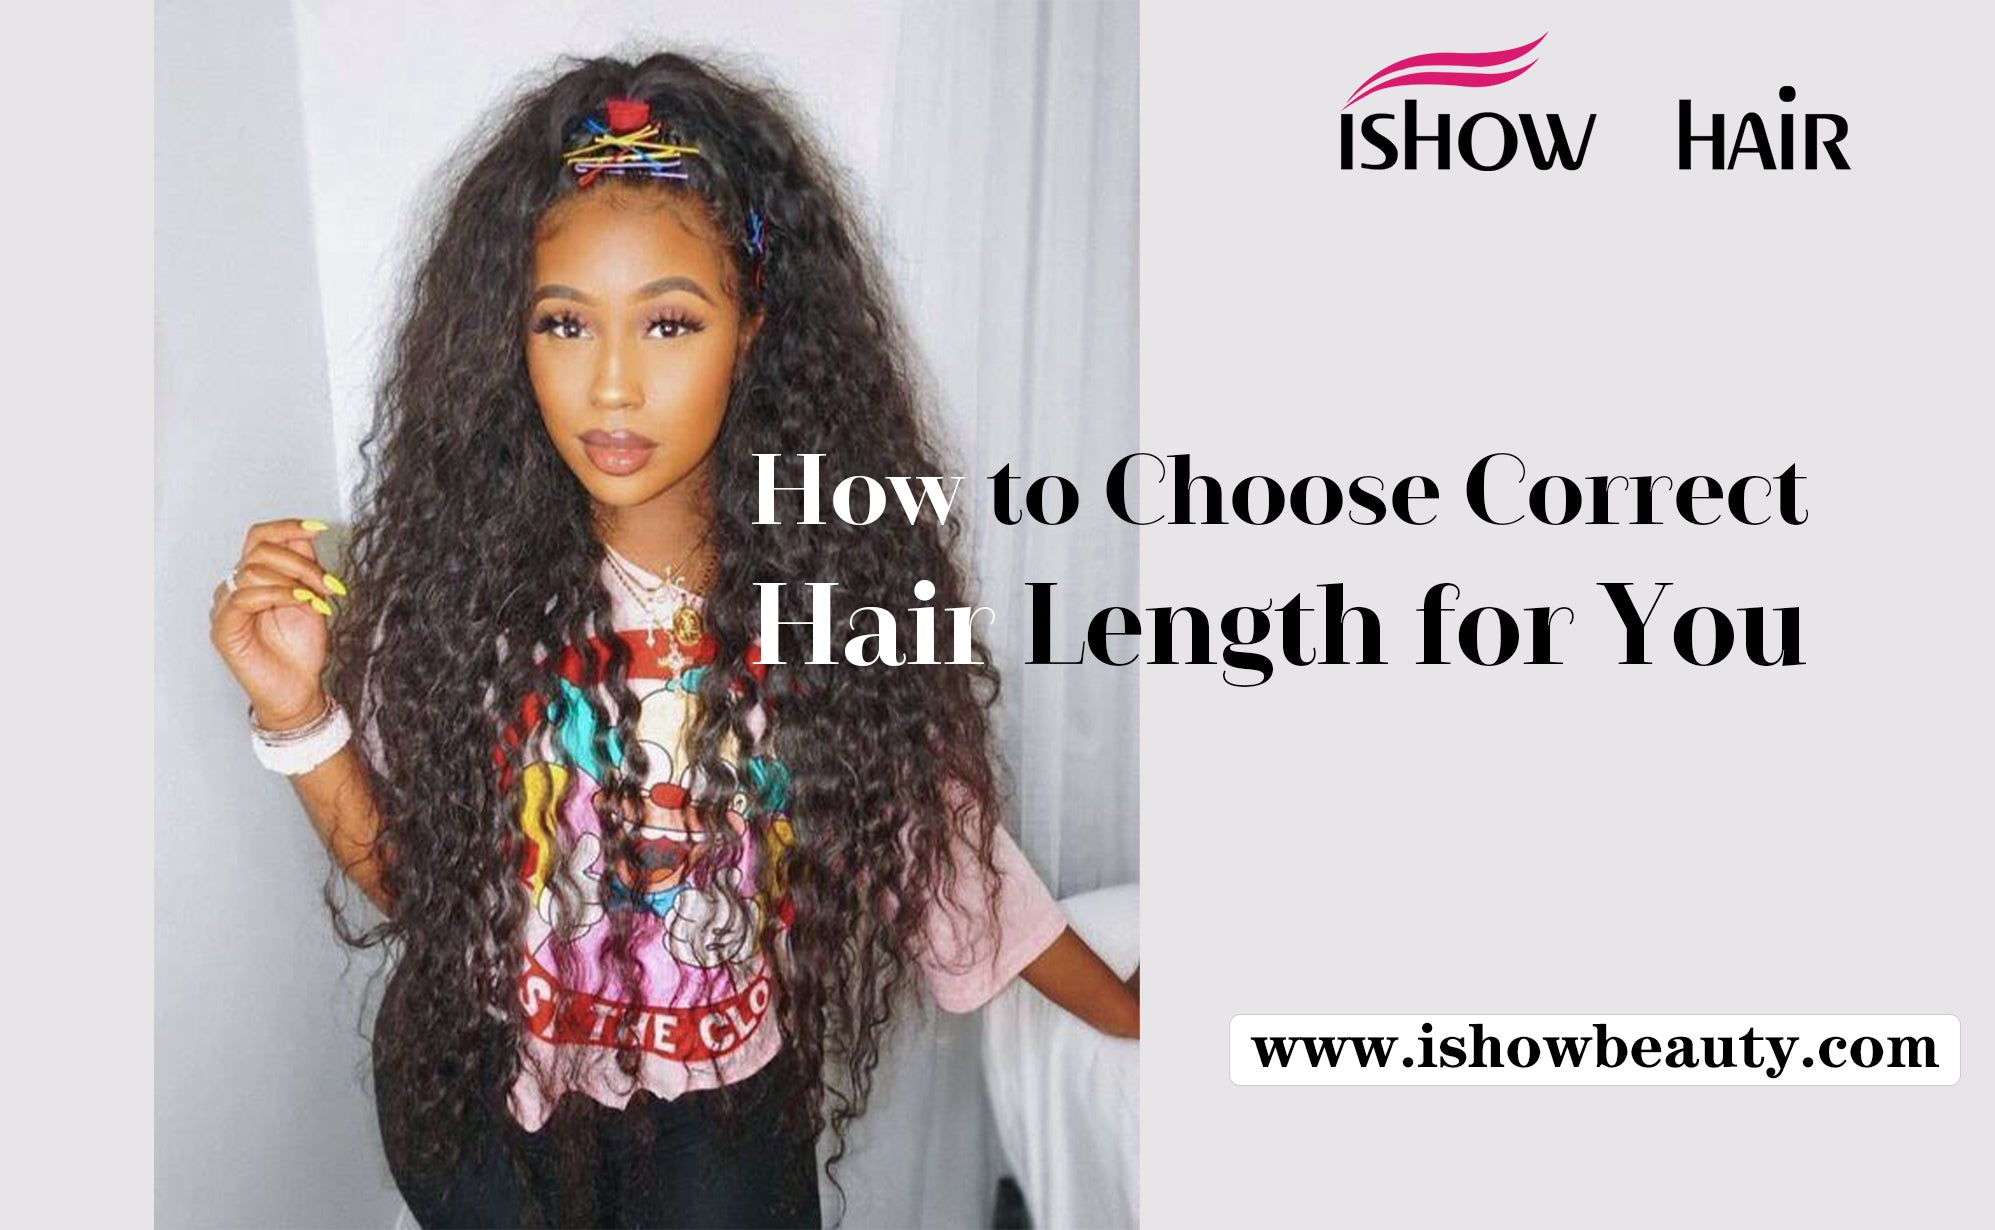 How to Choose Correct Hair Length for You